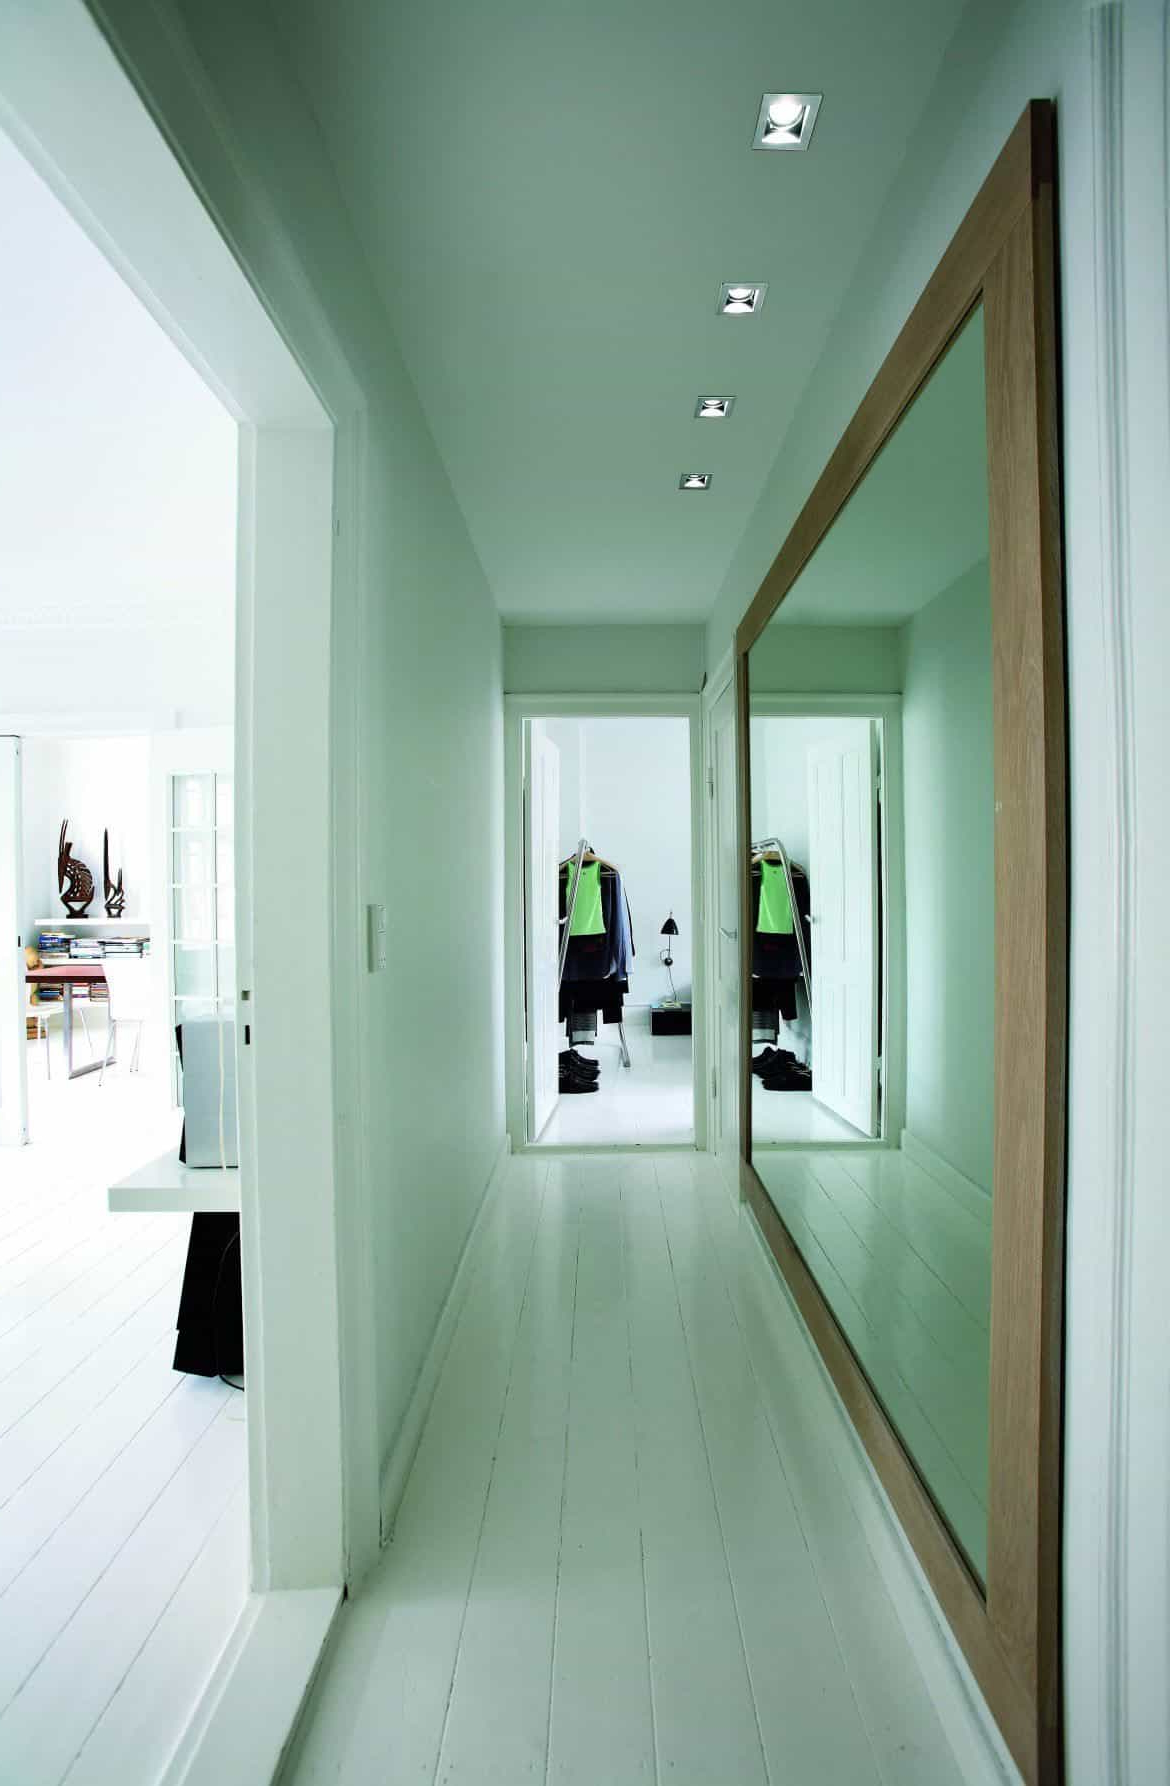 Large Framed Wall Mirrors With Regard To Preferred Hallway With Large Framed Wall Mirror In White Walls – Hallway (Gallery 17 of 20)